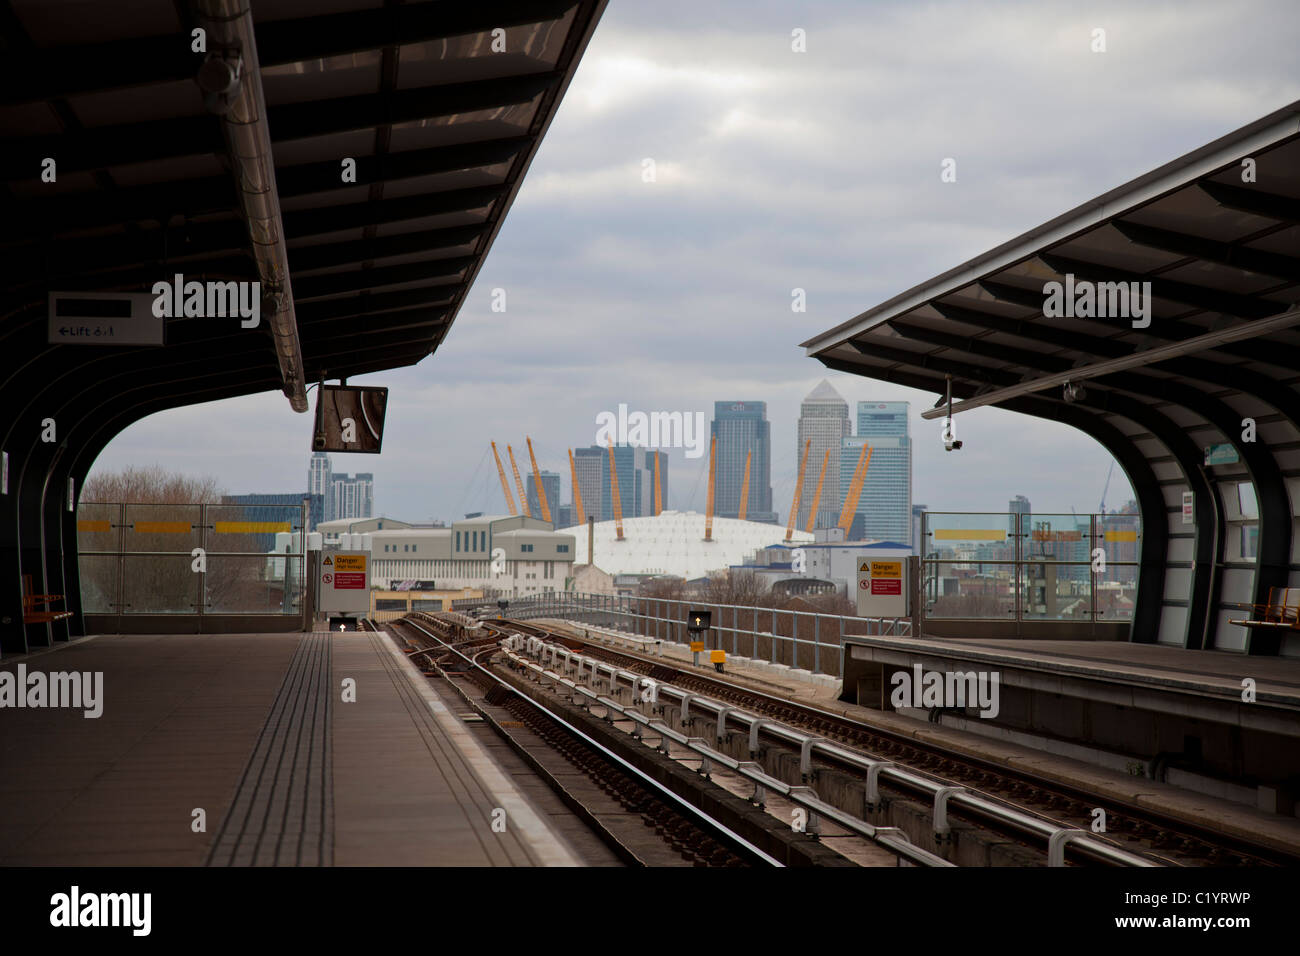 Docklands and O2 from a DLR station - Stock Image